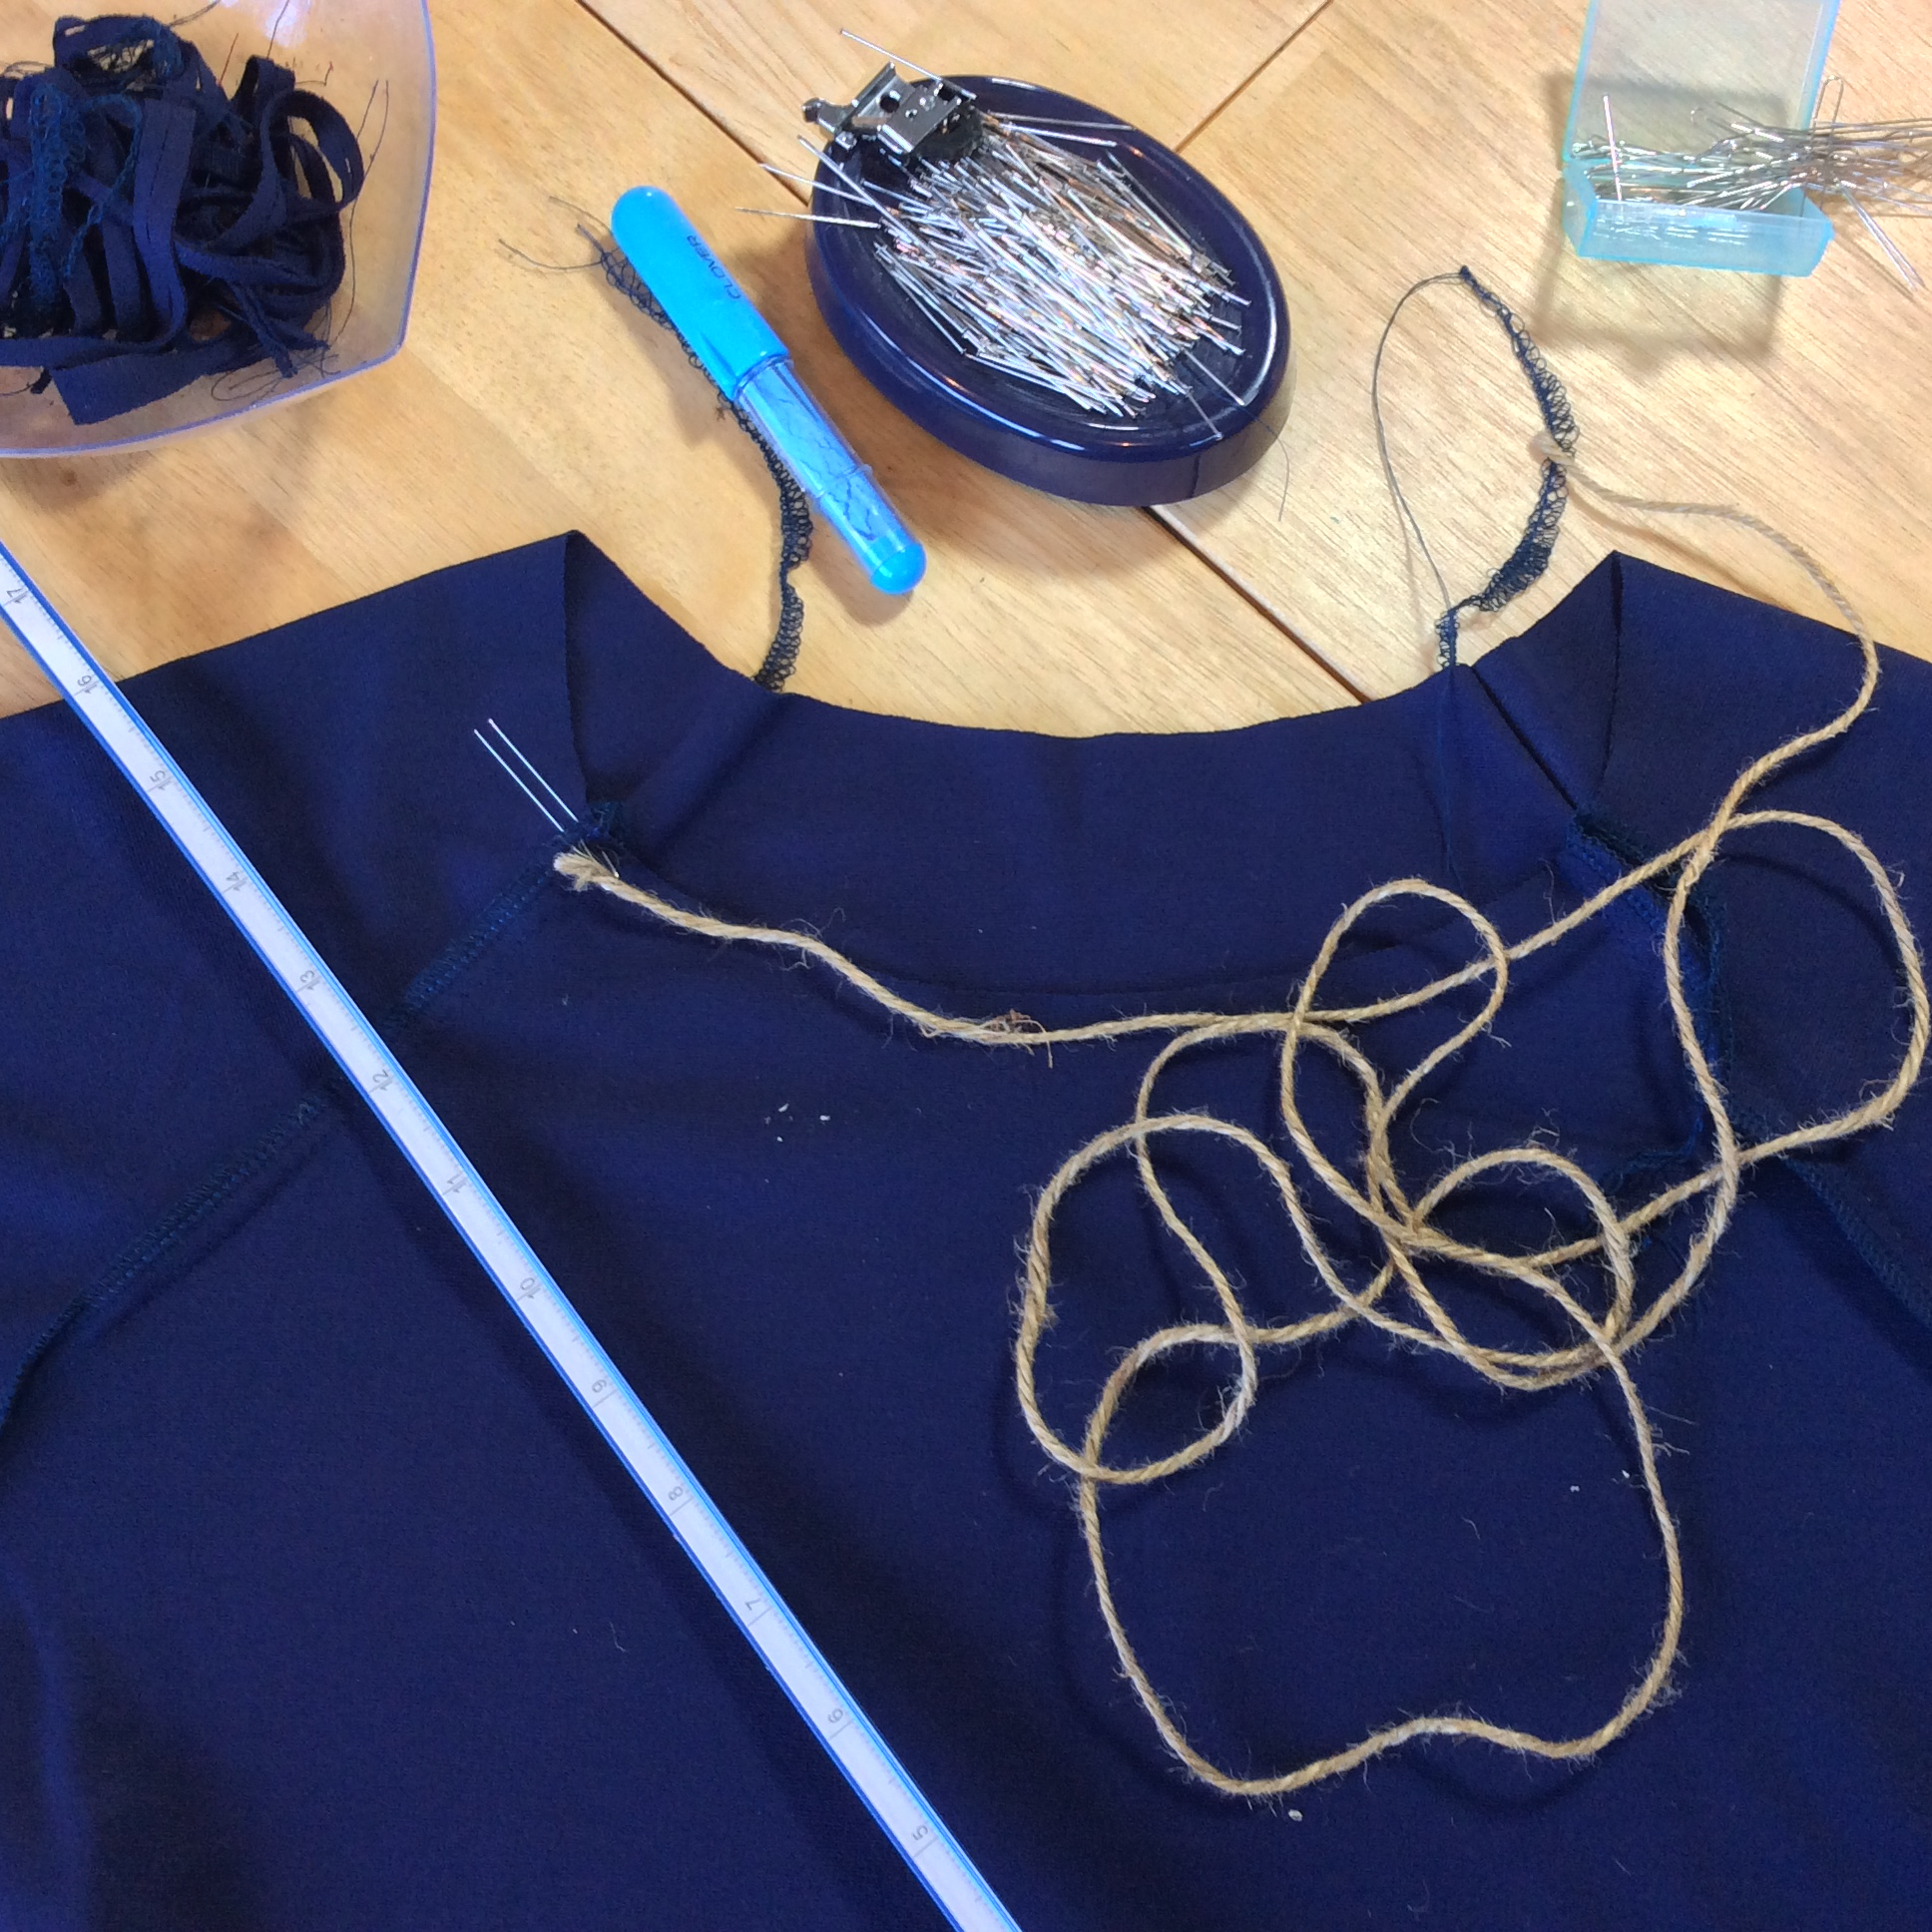 How to measure calculate neckband length